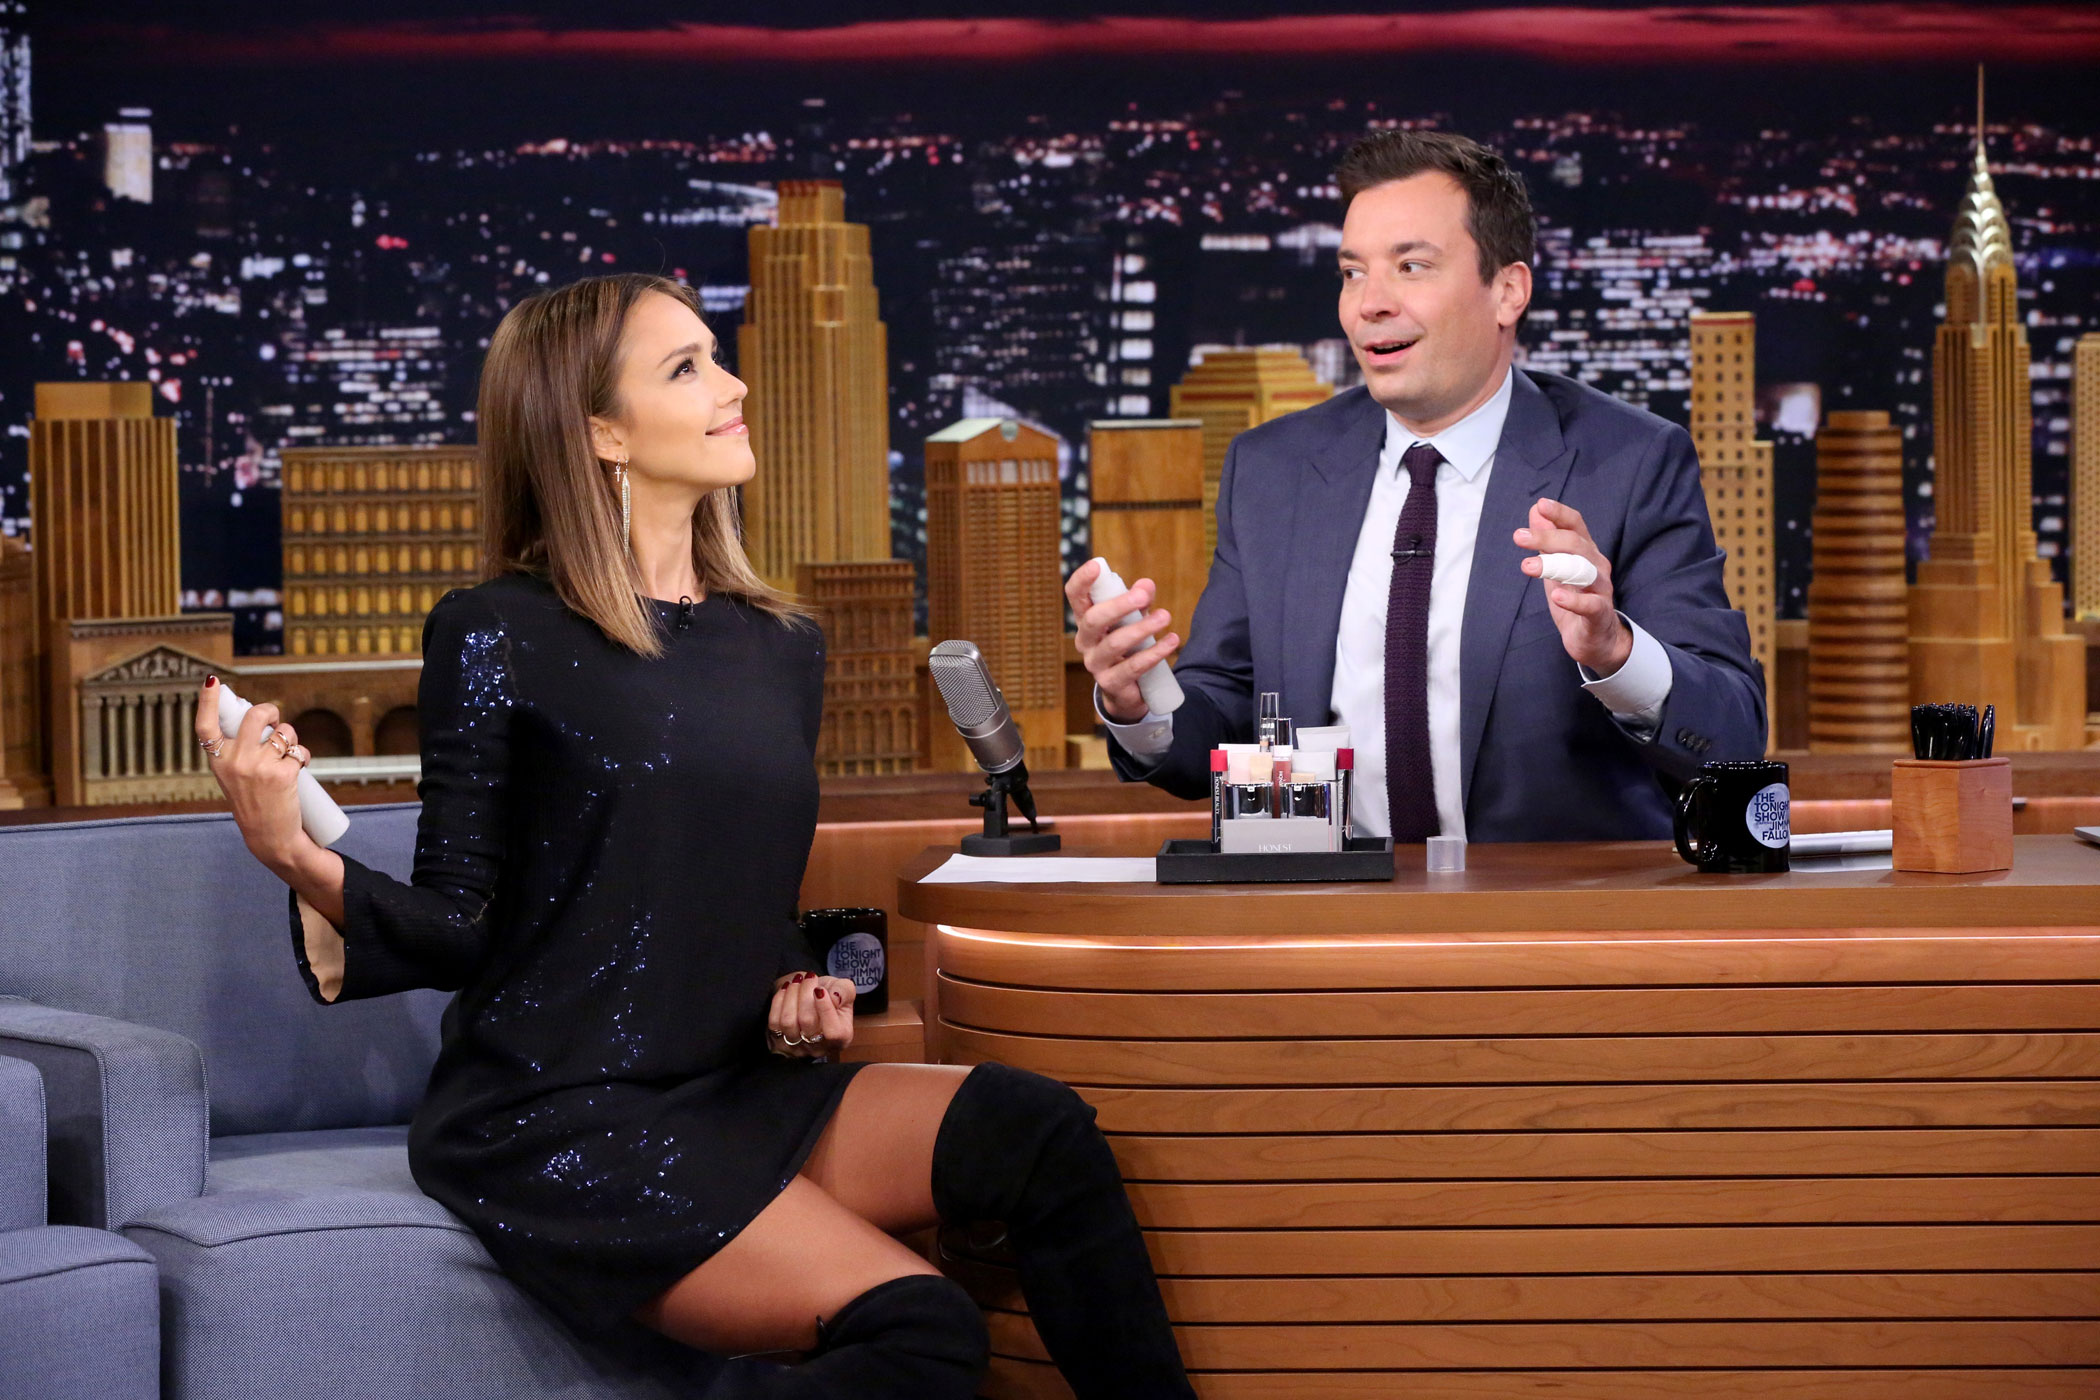 Jessica Alba during an interview with host Jimmy Fallon on Sept. 14, 2015.